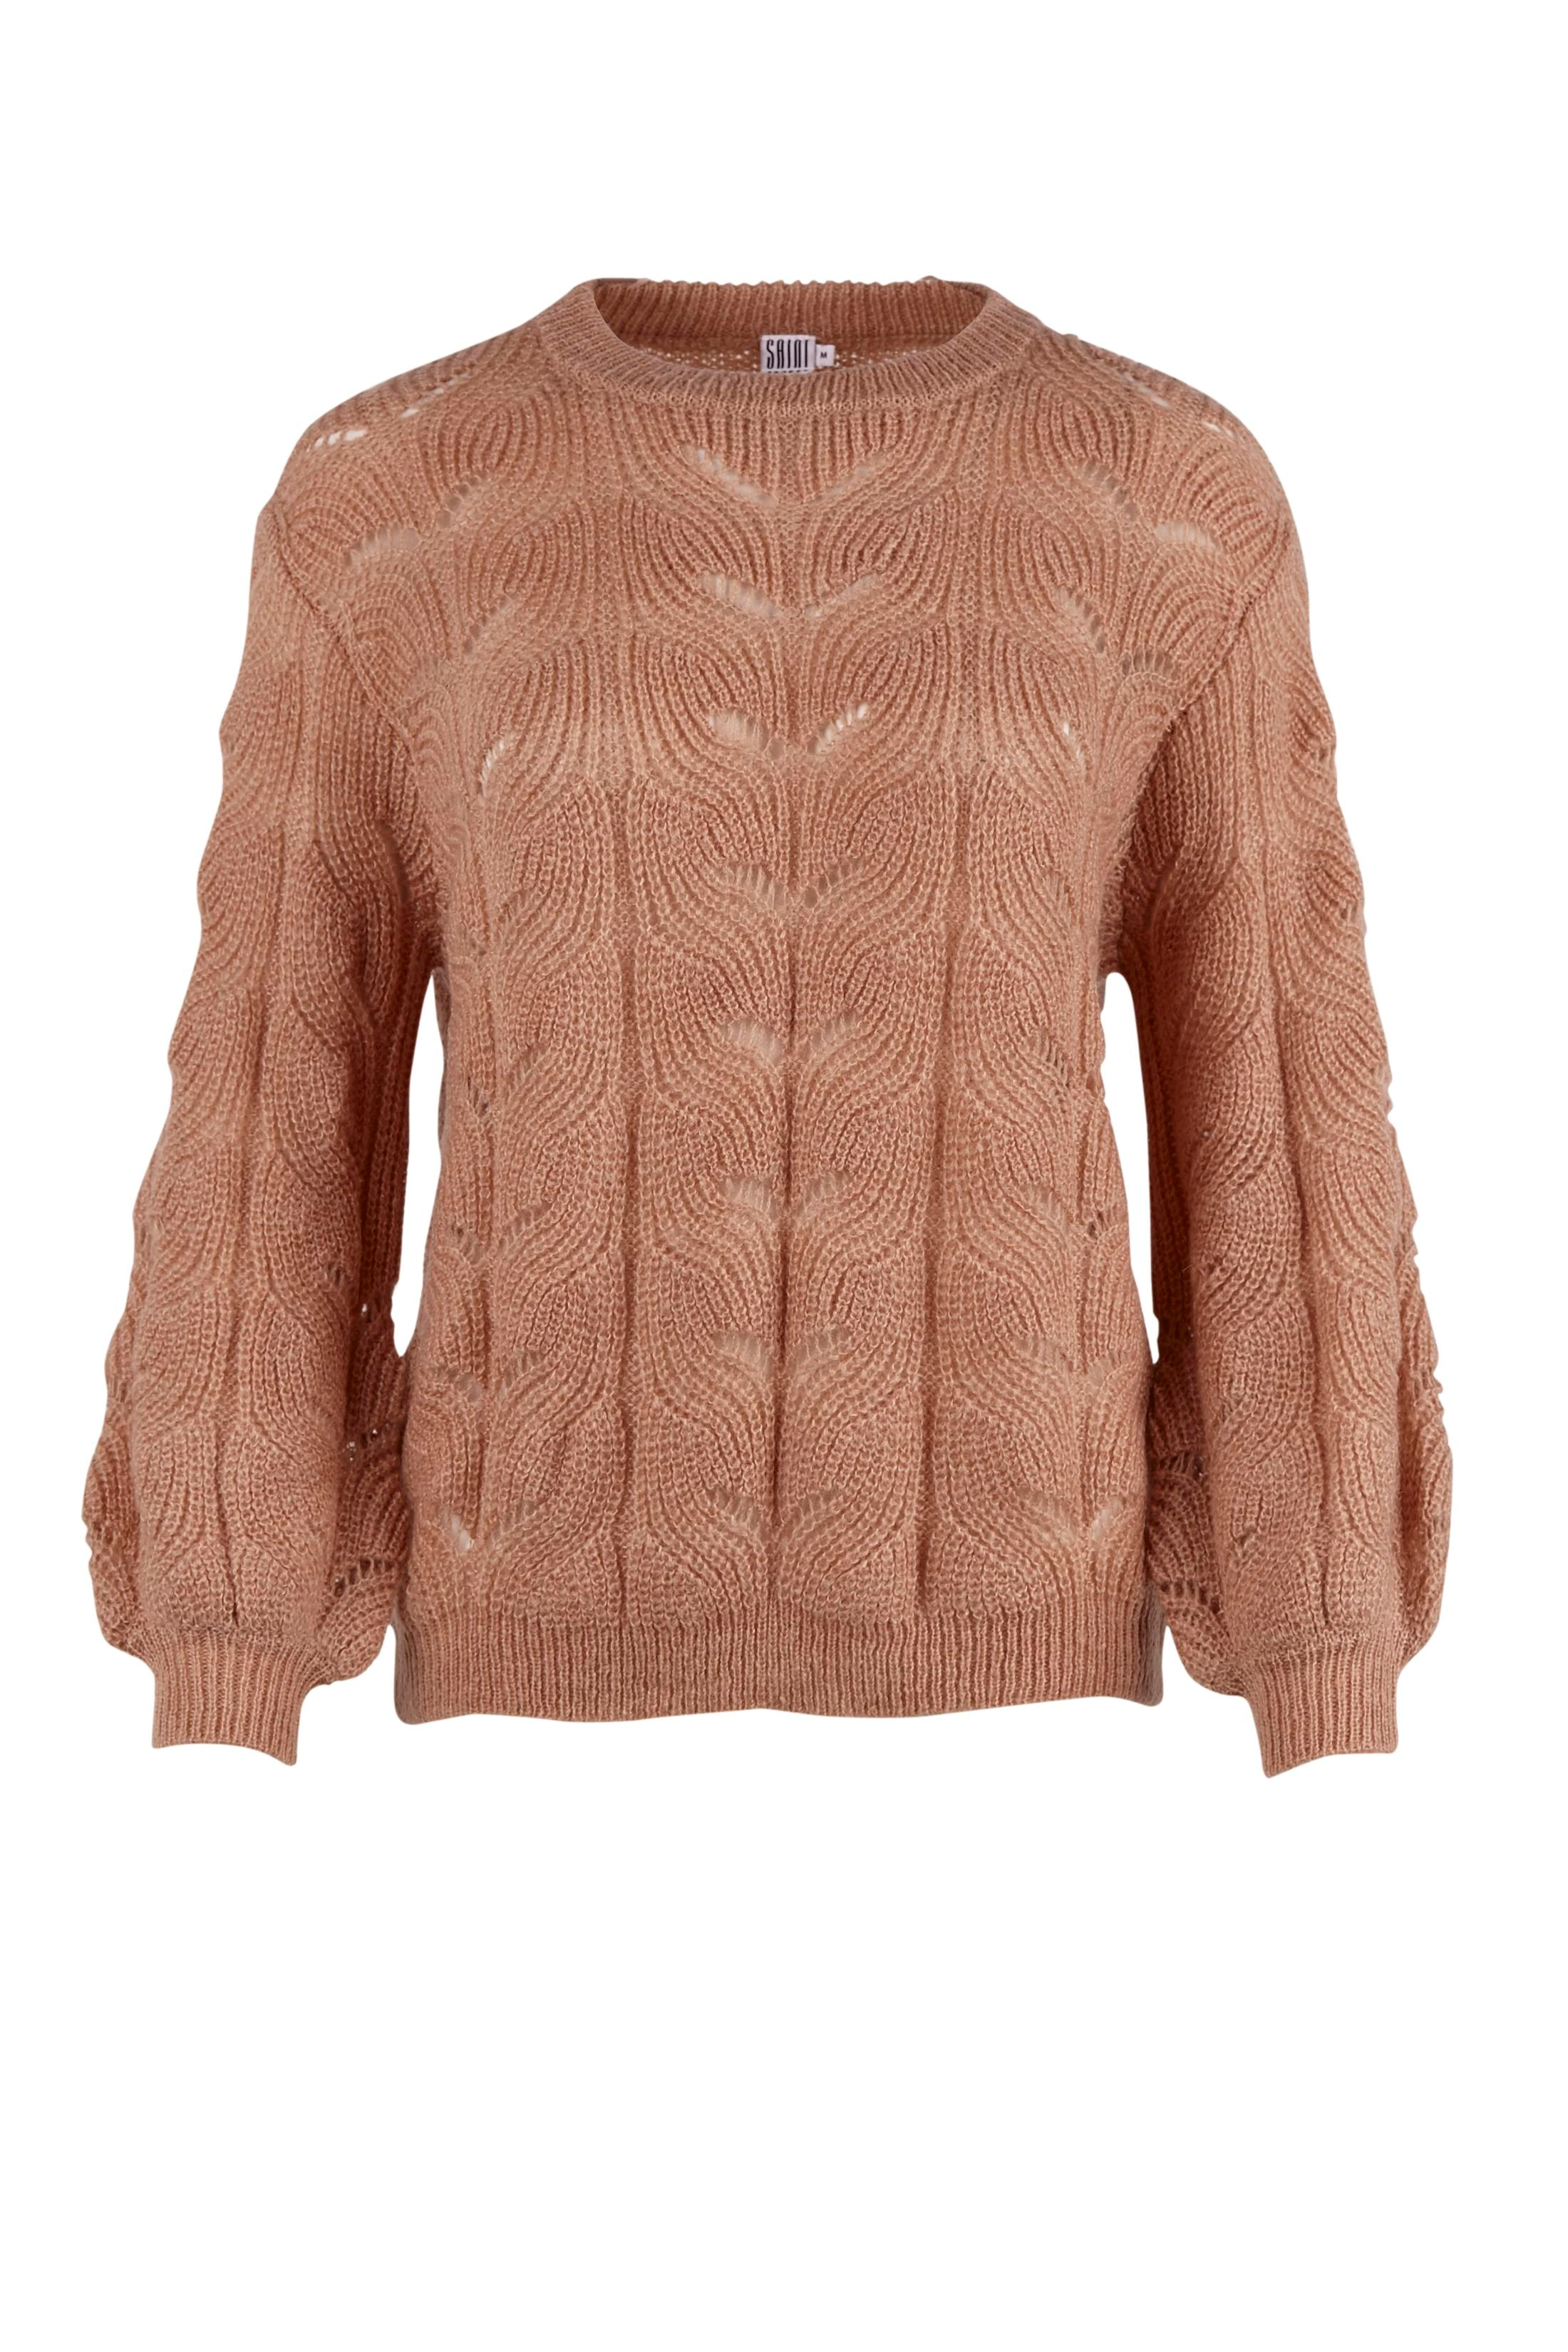 KNIT BLOUSE WITH POINTELLE | Rose - XL